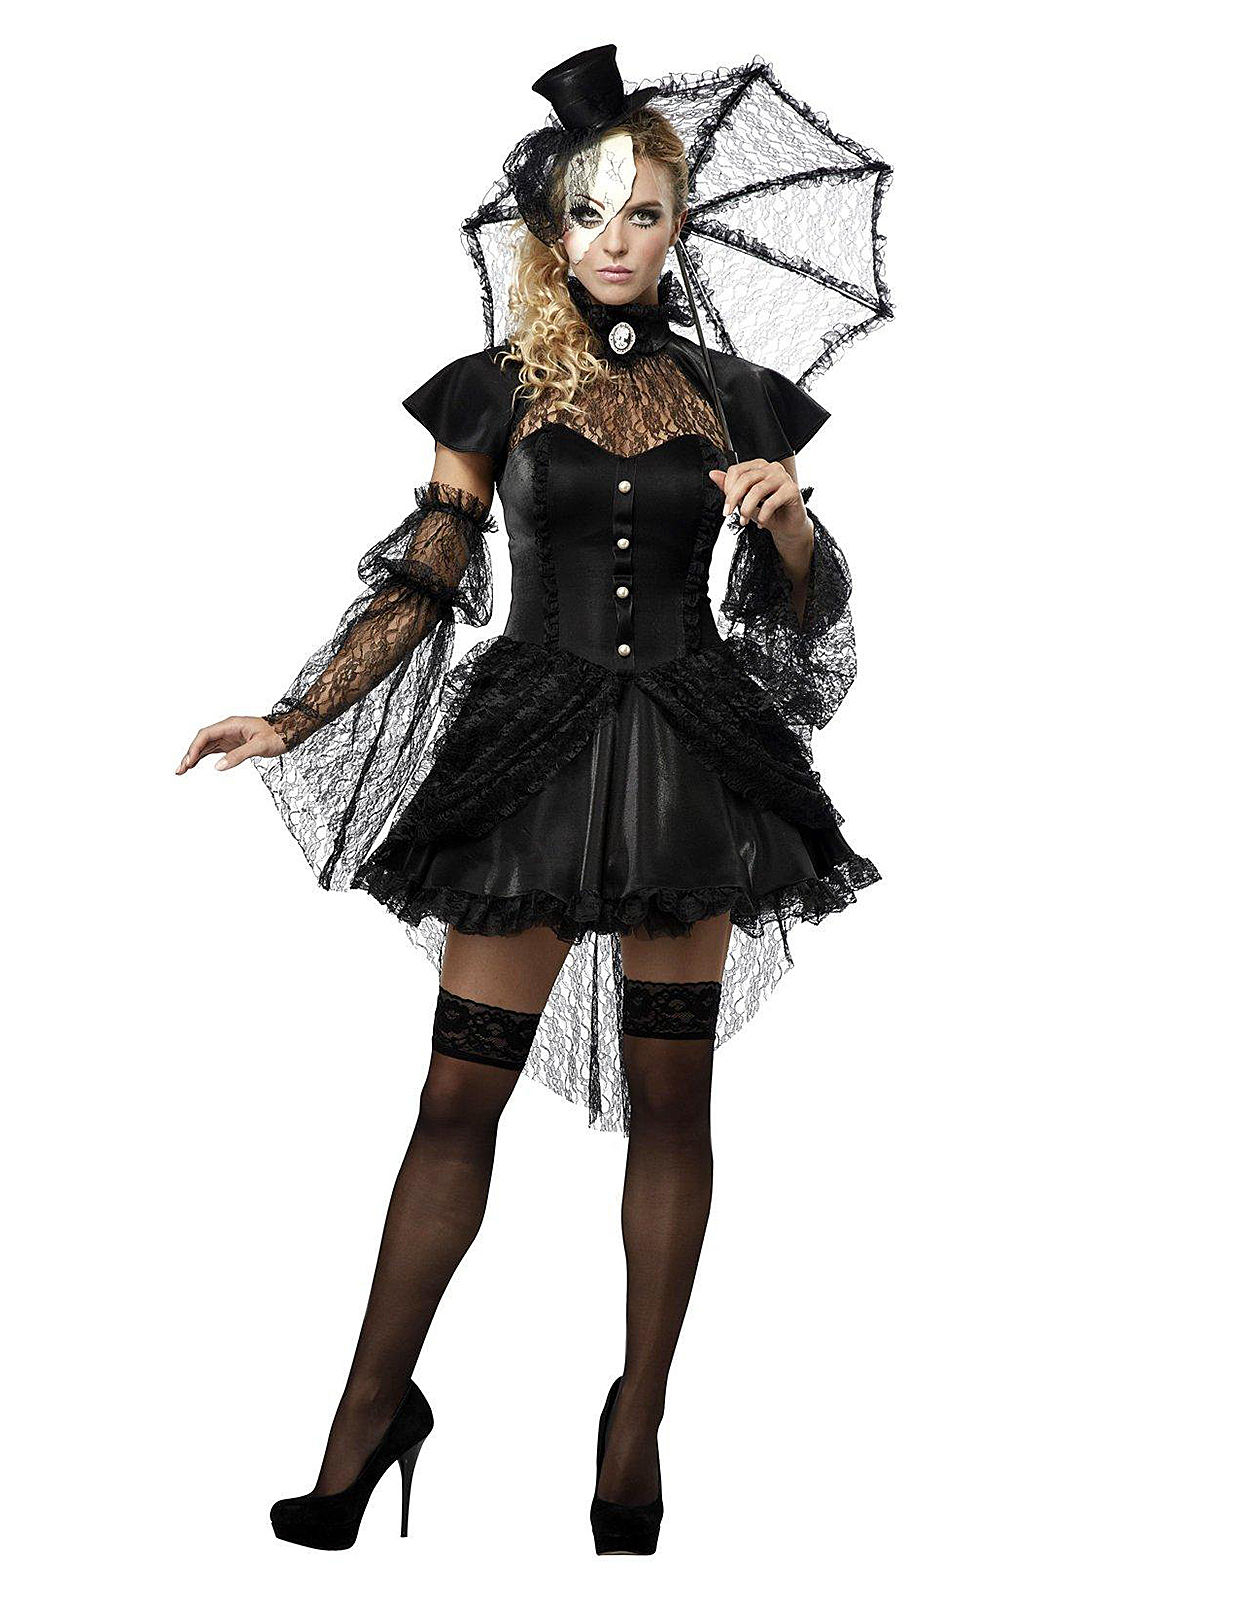 gothic ragdoll halloween damenkost m schwarz g nstige faschings kost me bei karneval megastore. Black Bedroom Furniture Sets. Home Design Ideas